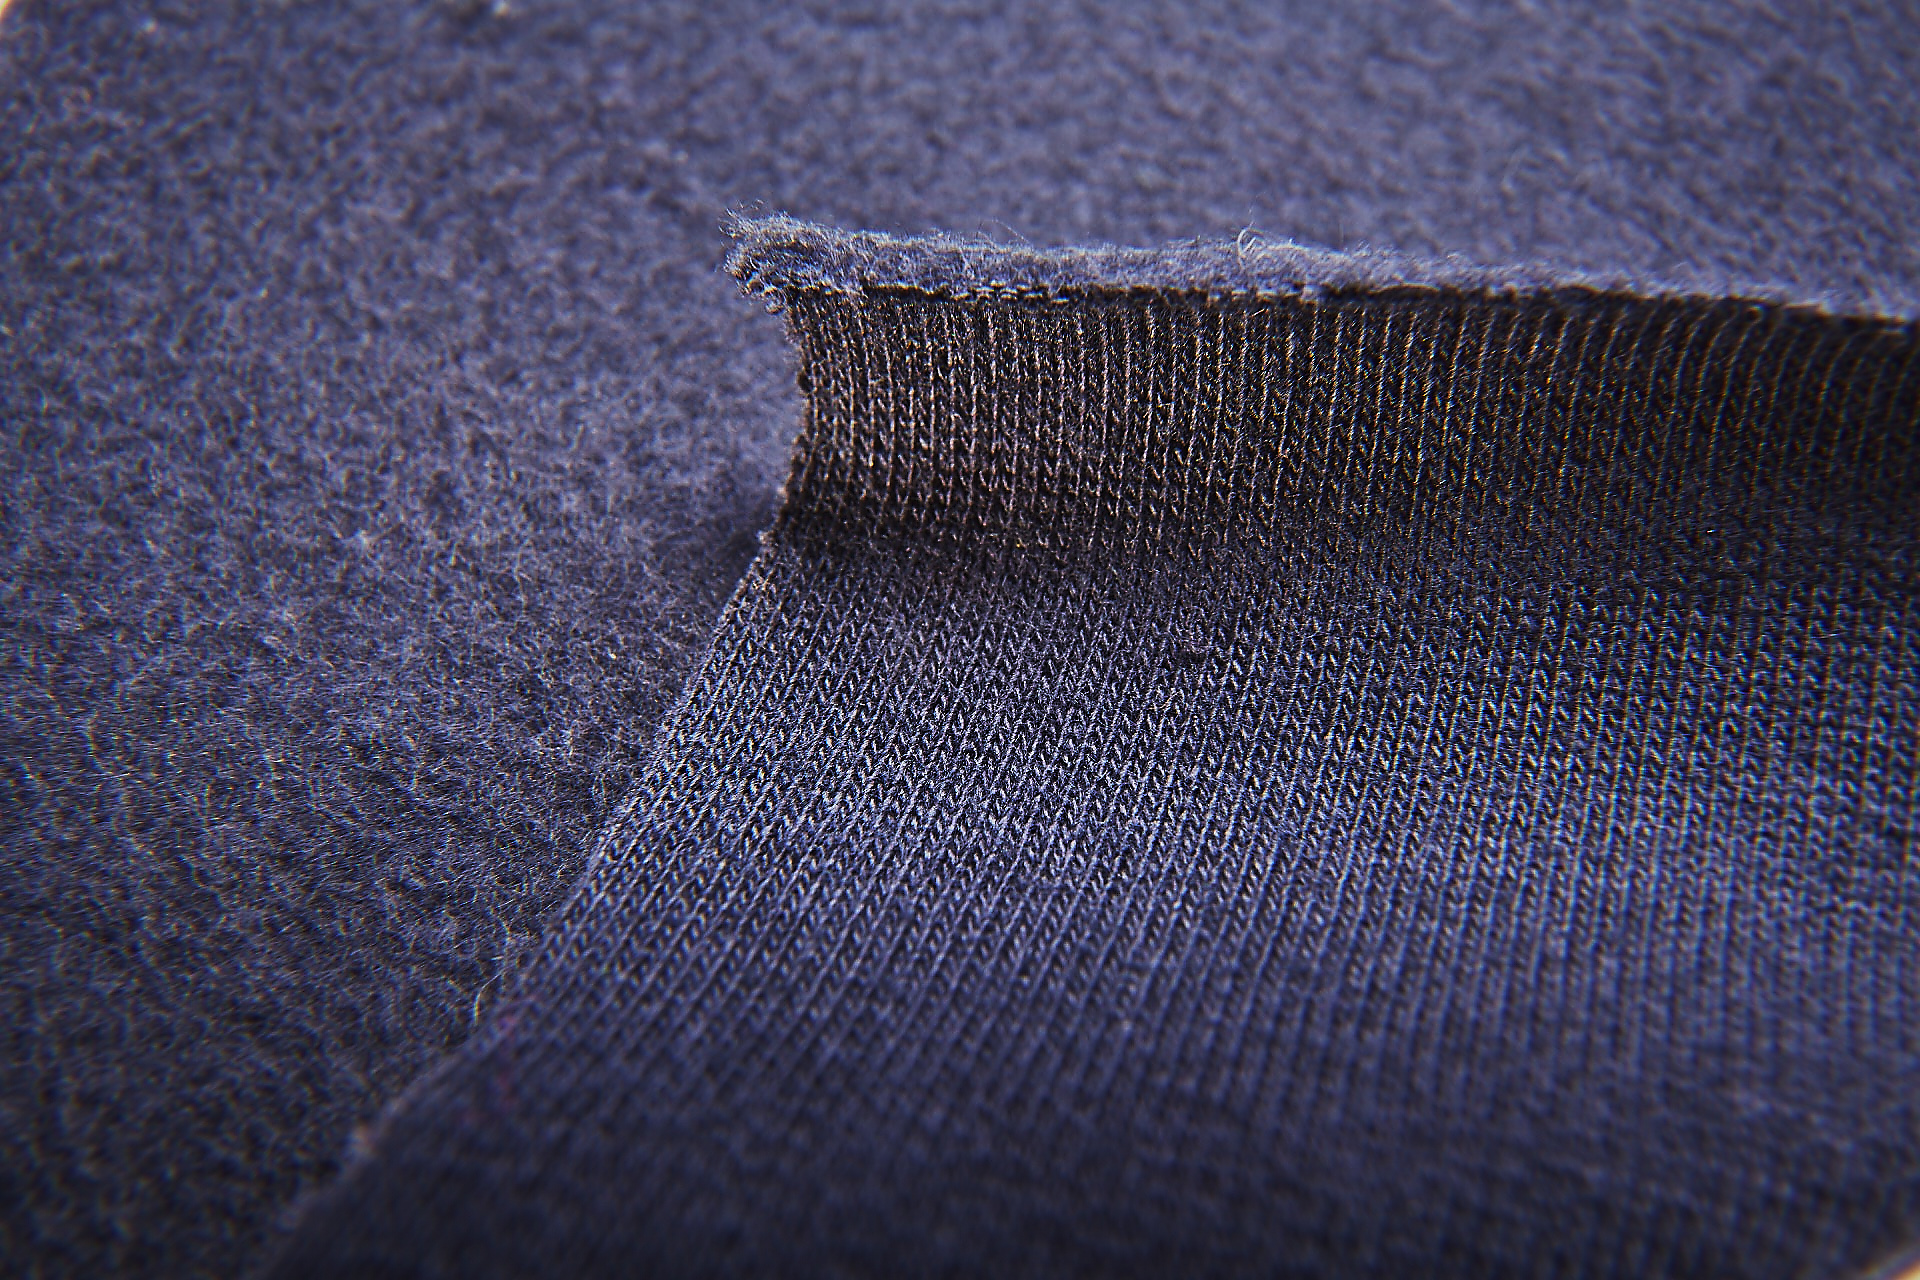 Cordura Brand baselayer knit from Cyberknits offered abrasion resistance. © Cordura